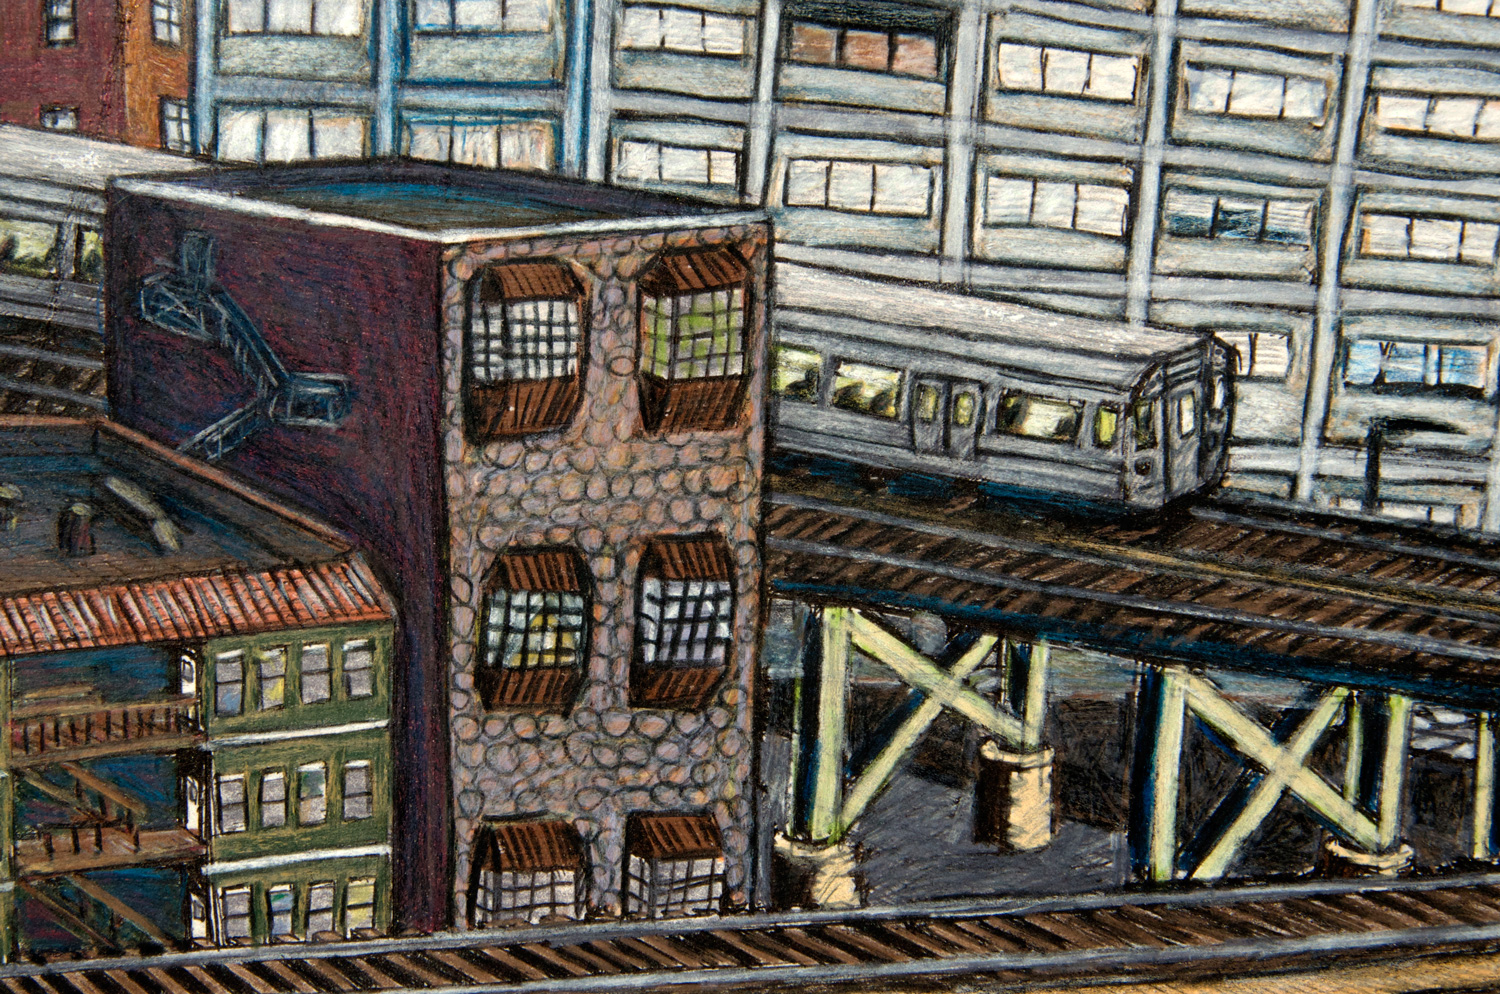 City #3 ink and watercolor pencil drawing with acrylic paint (Chicago imaginary cityscape), by Billy Reiter